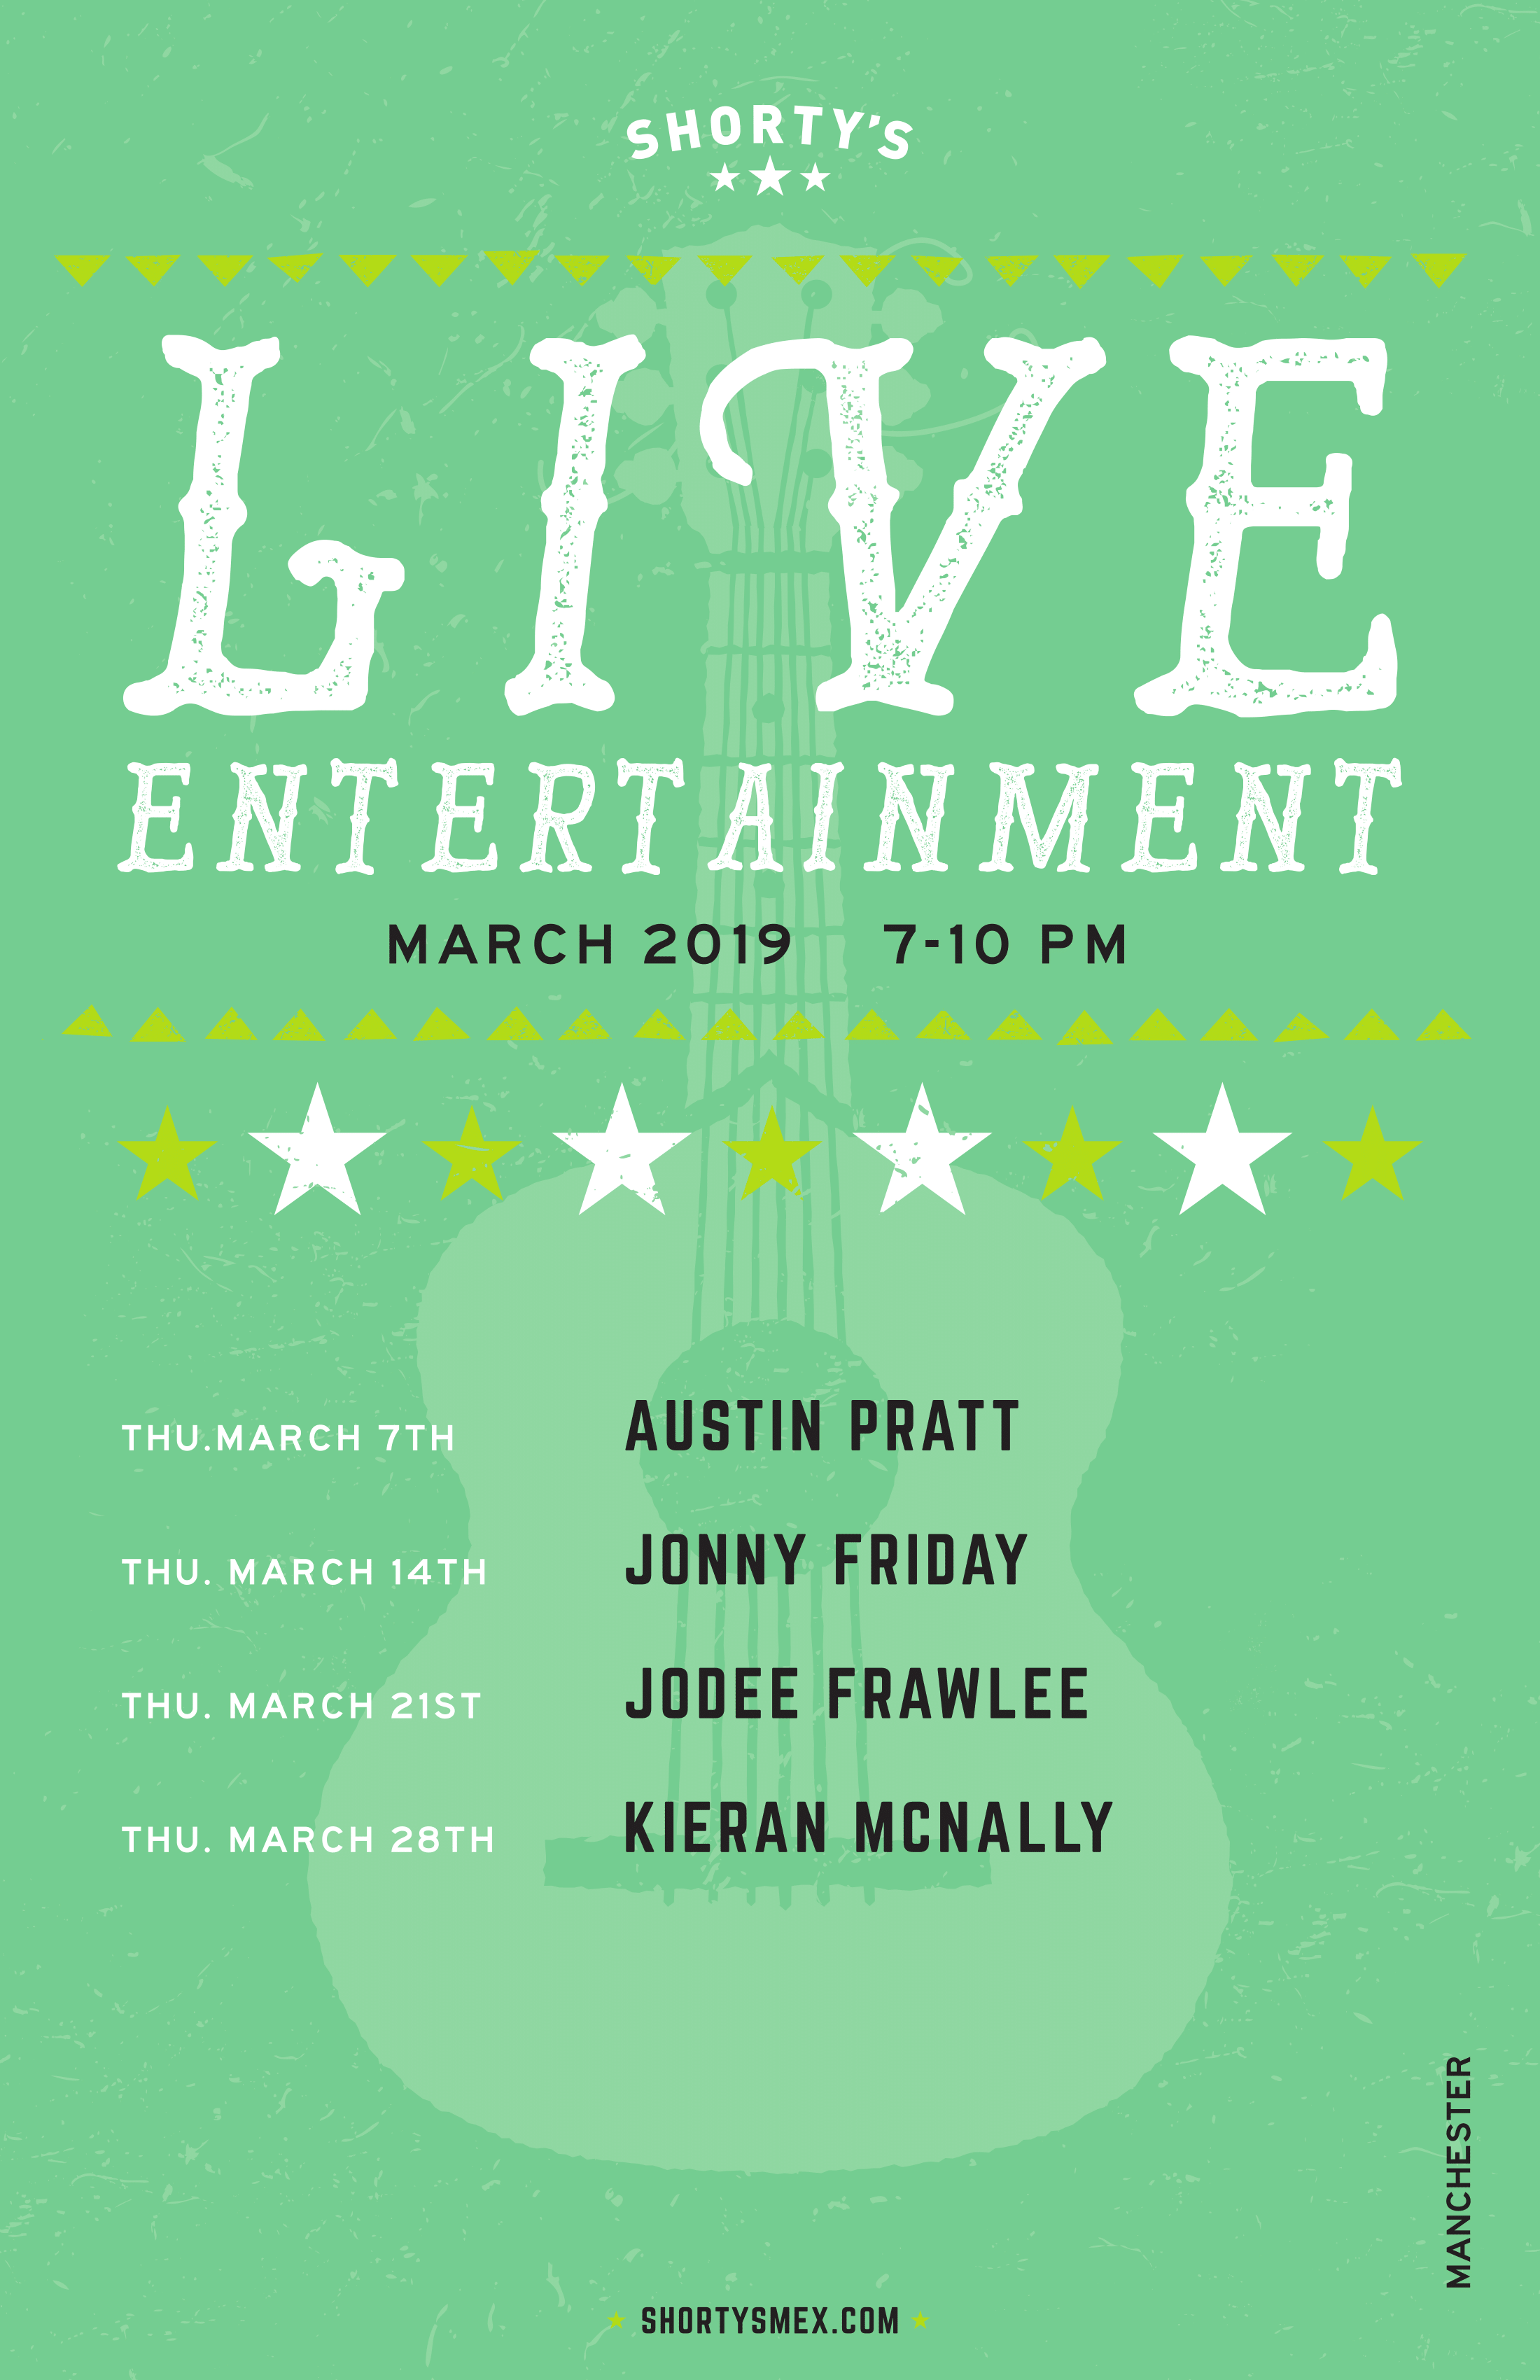 Shorty's Live Entertainment Calendar - March in Manchester